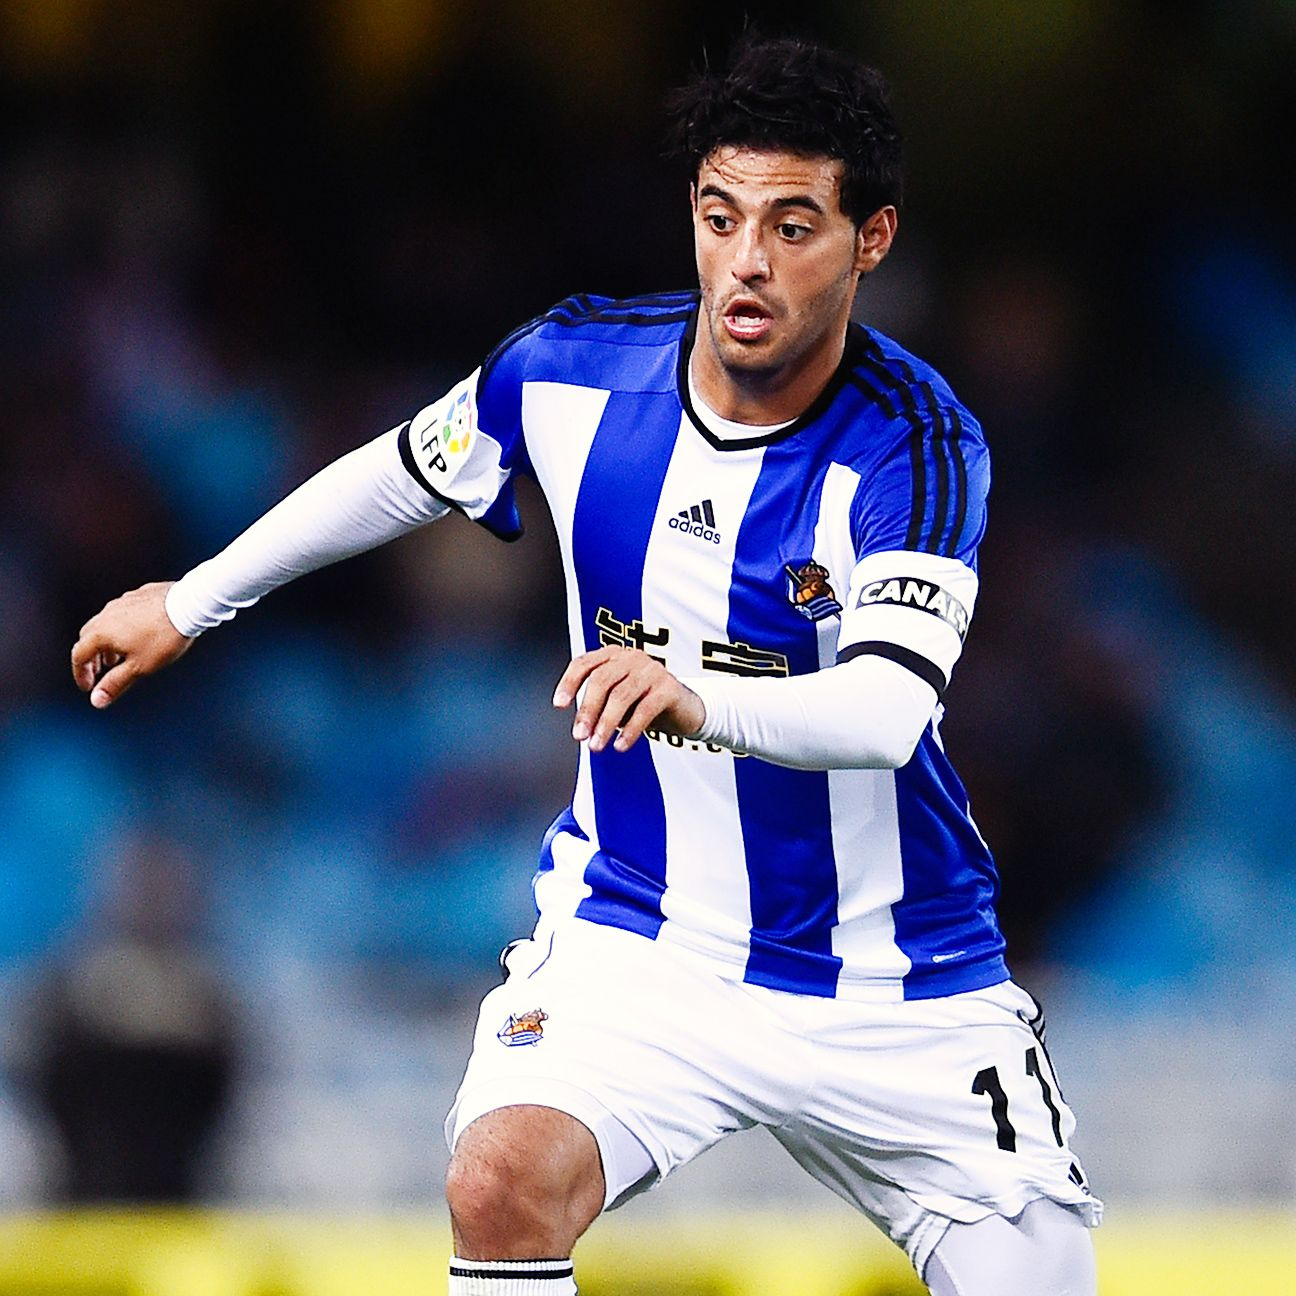 Carlos Vela was given a standing ovation for his performance in Real Sociedad's stunning home win over Barcelona.